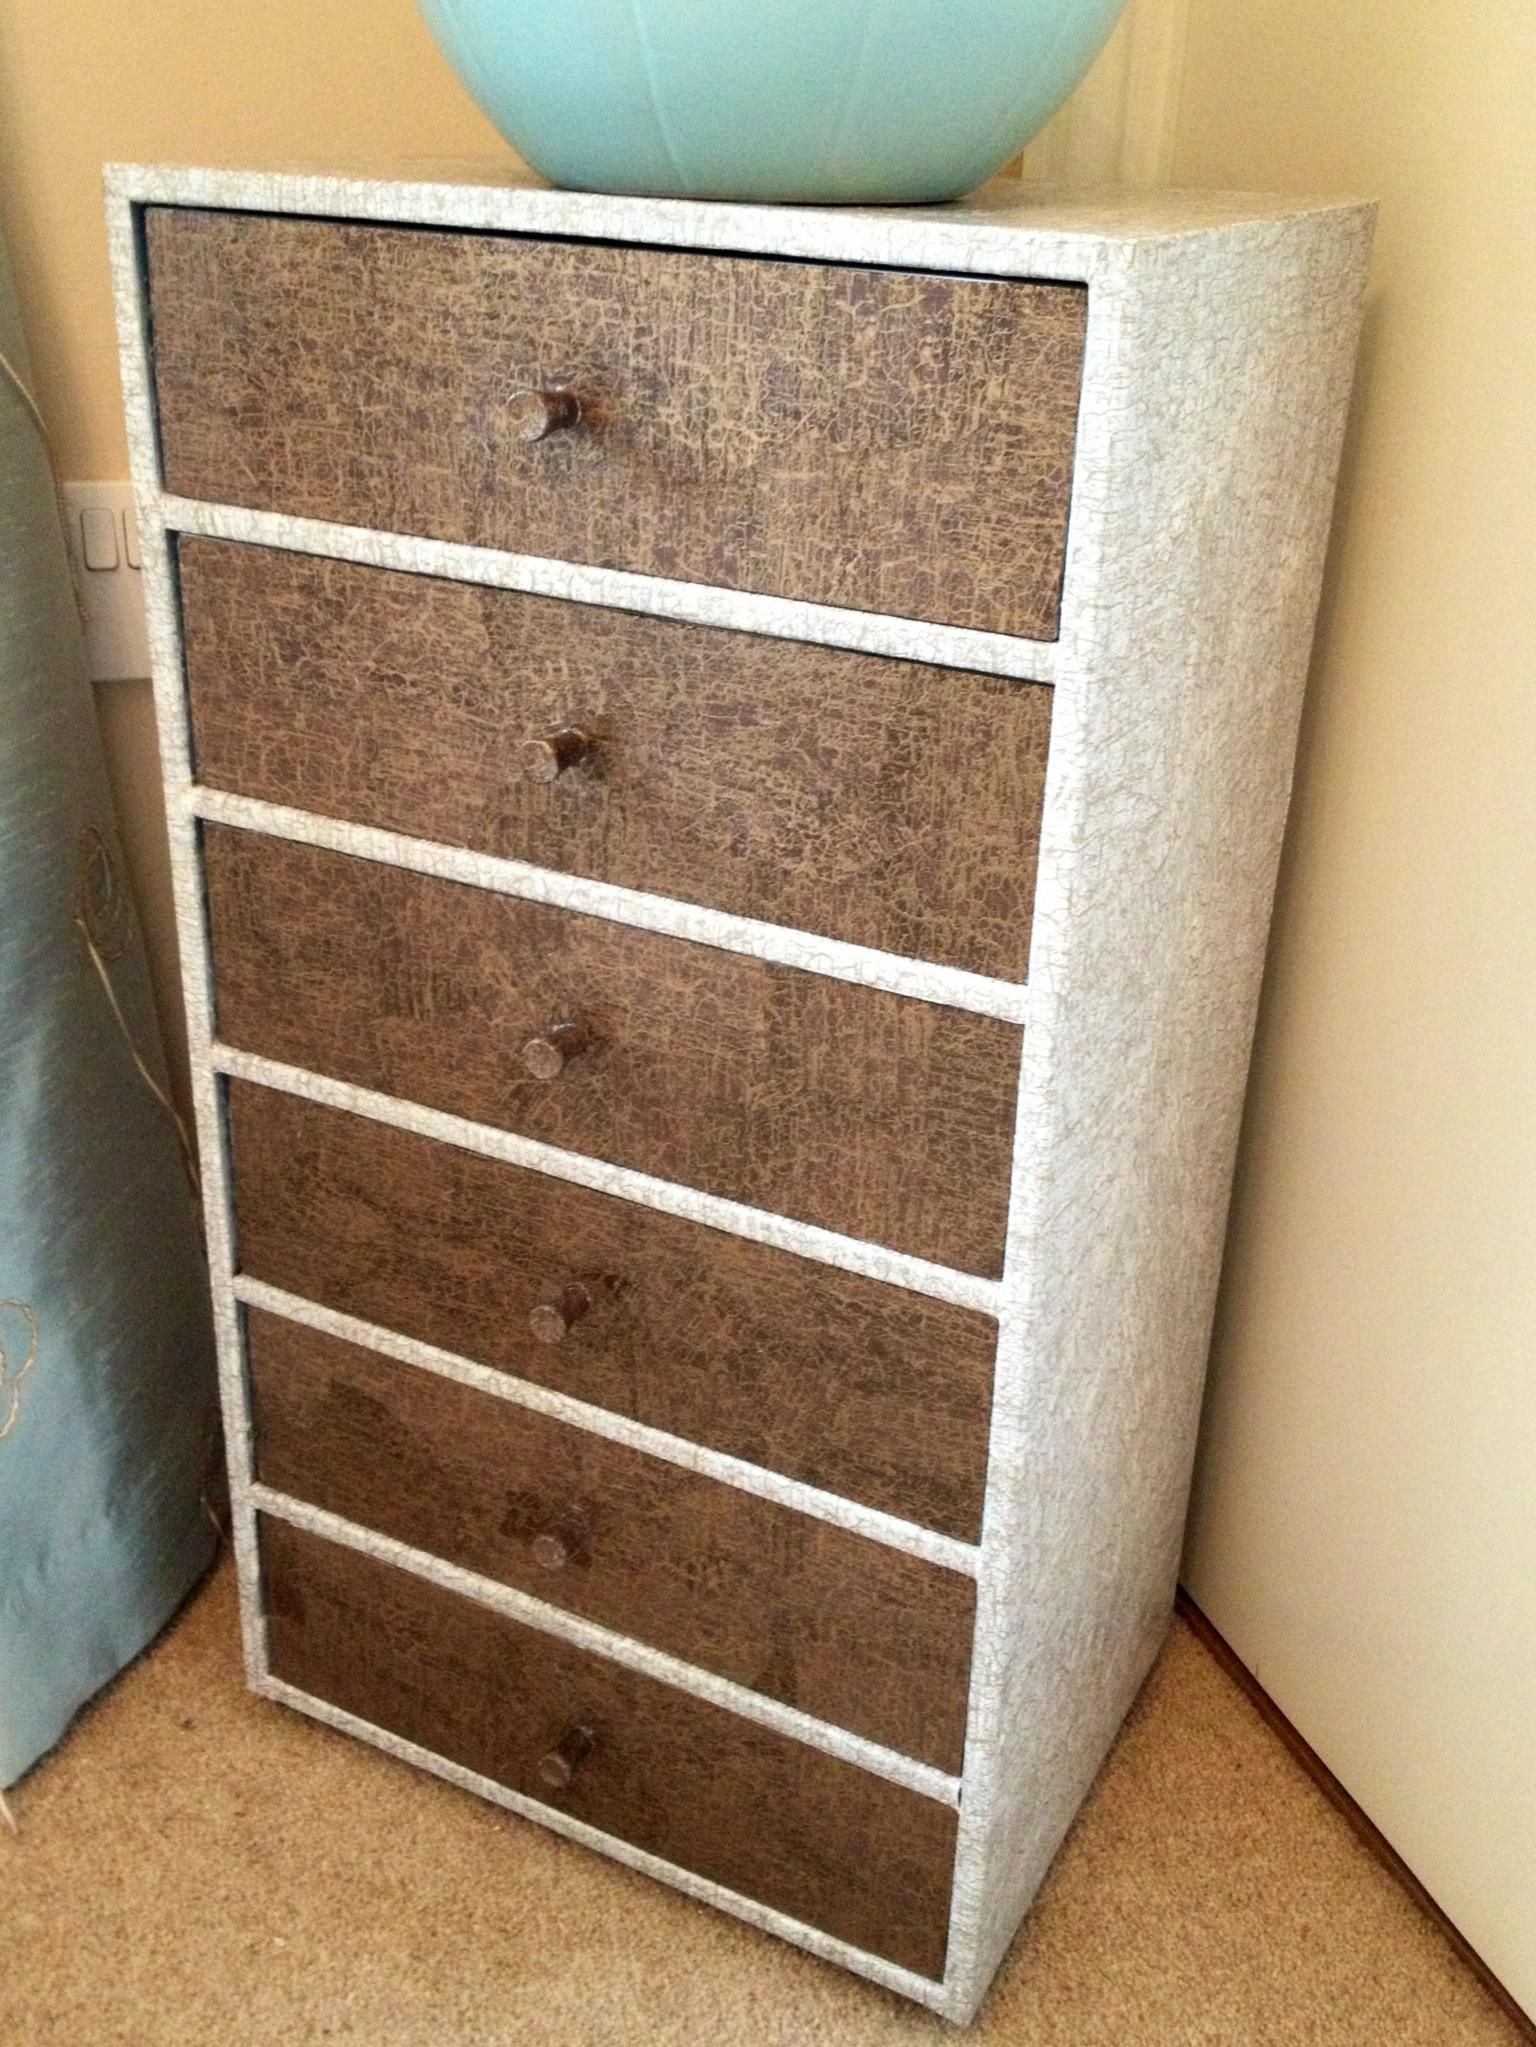 Decopatch Chest Of Drawers   What A Great Way To Recycle Old Furniture!  Beautiful.